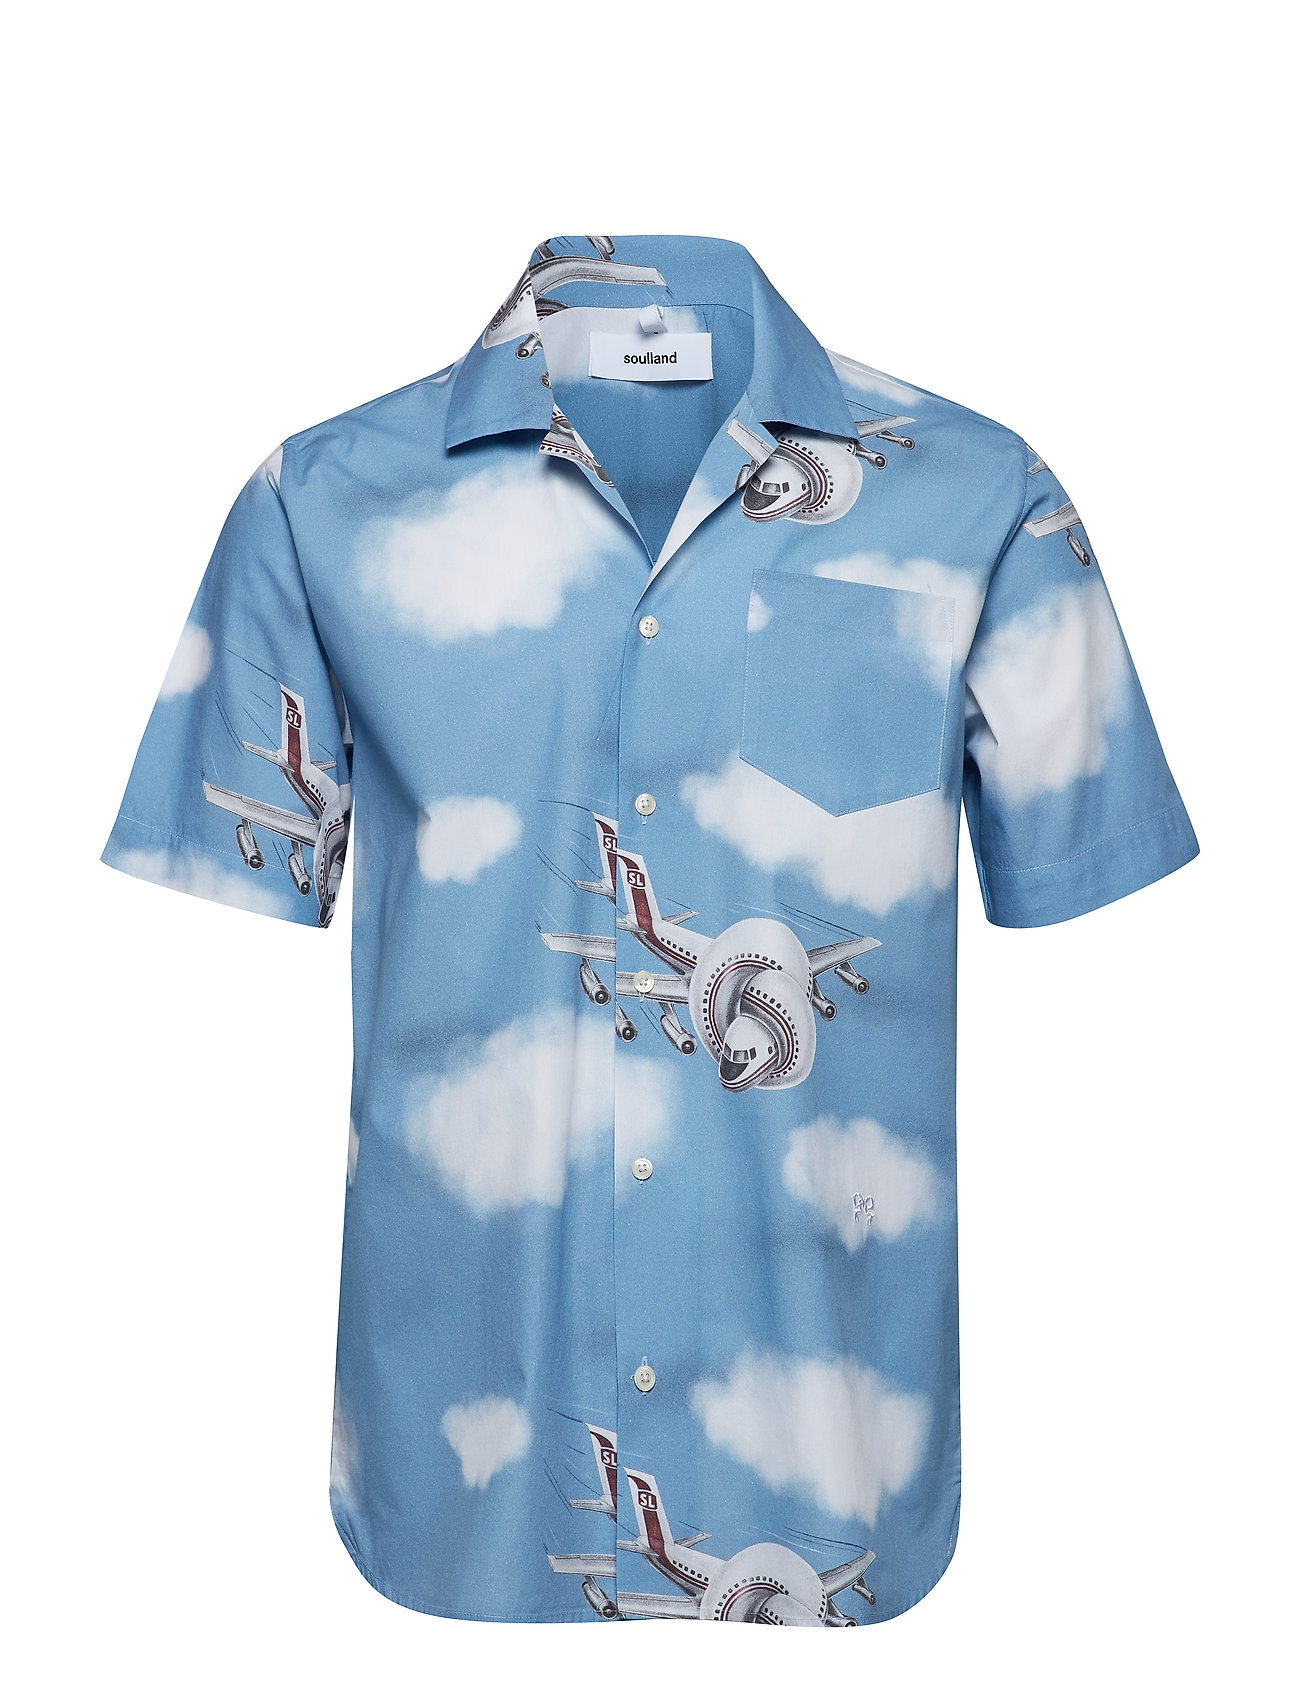 Soulland CORNWALL ALL OVER PRINTED SHORT SLEEVE SHIRT - BLUE